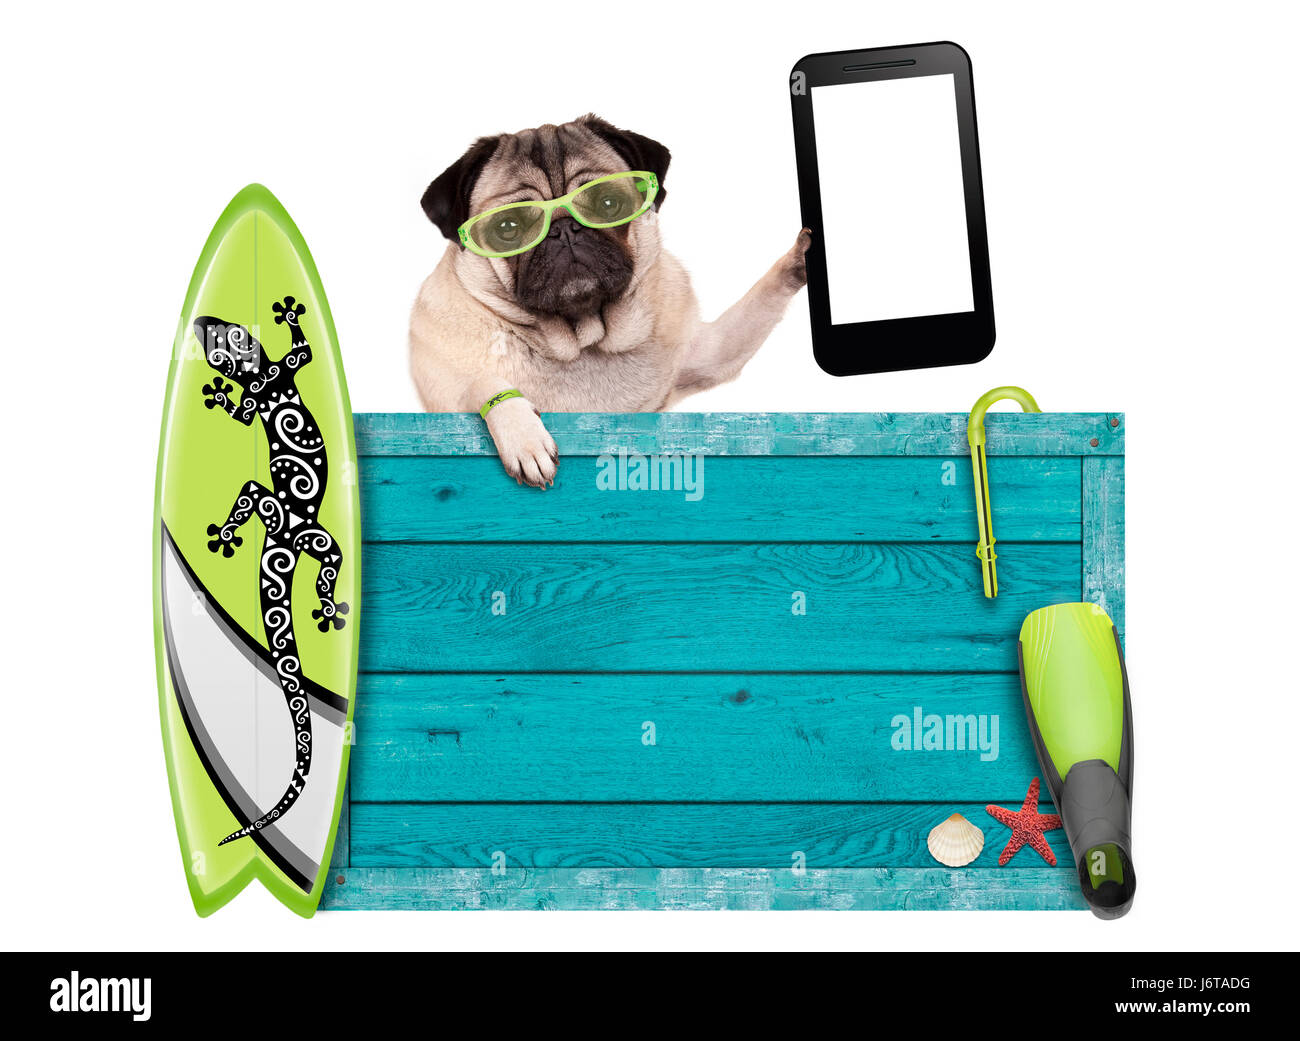 Pug dog on vacation with blue vintage wooden beach sign surfboard pug dog on vacation with blue vintage wooden beach sign surfboard and mobile phone tablet isolated on white background voltagebd Choice Image